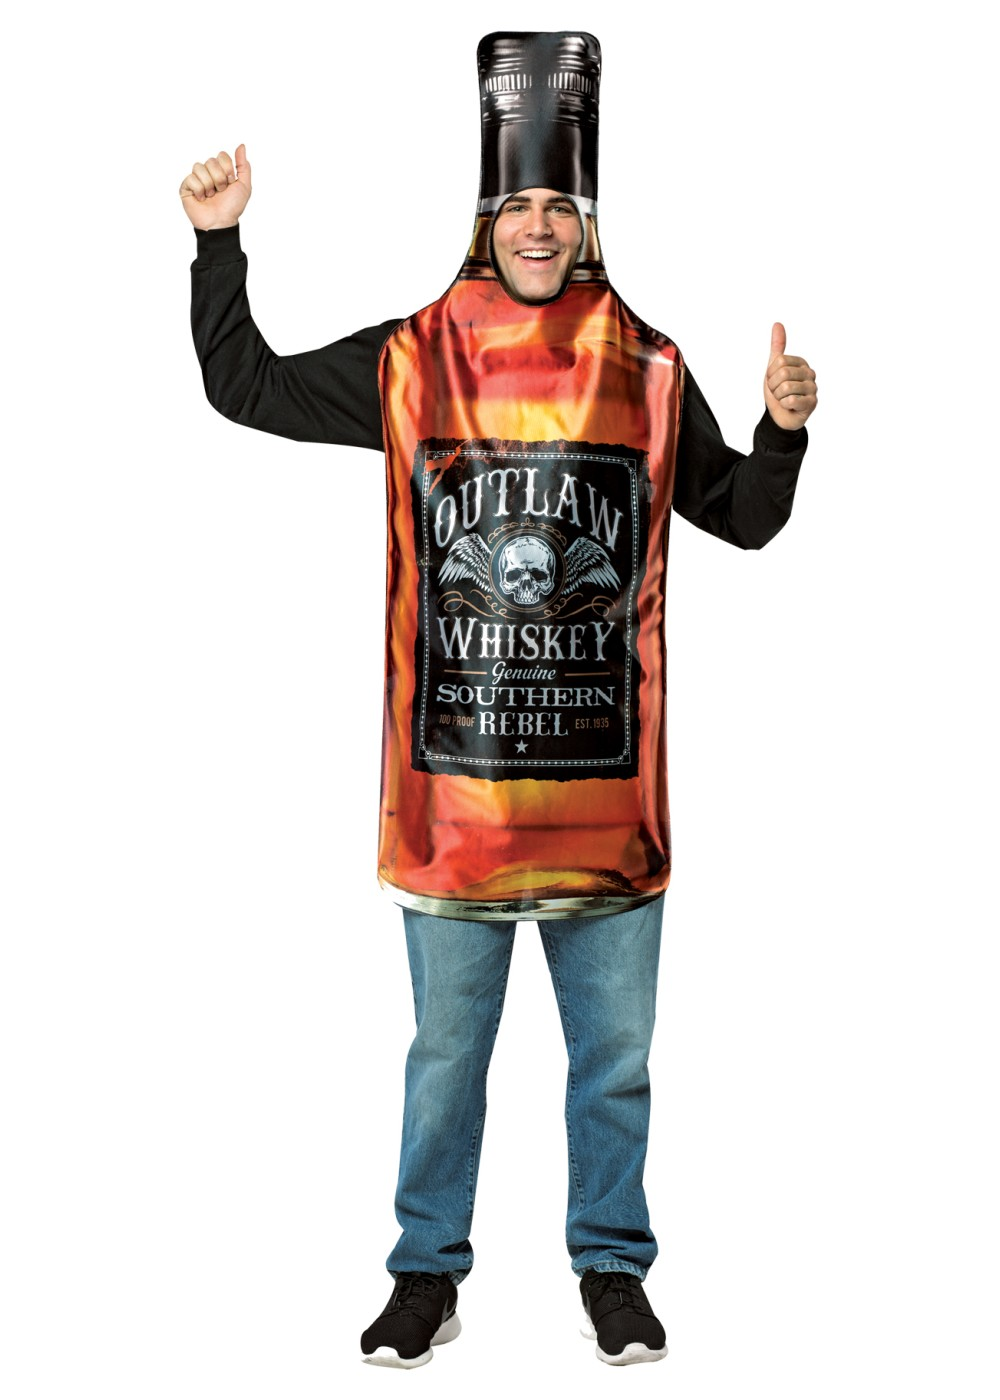 Whisky Bottle Costume